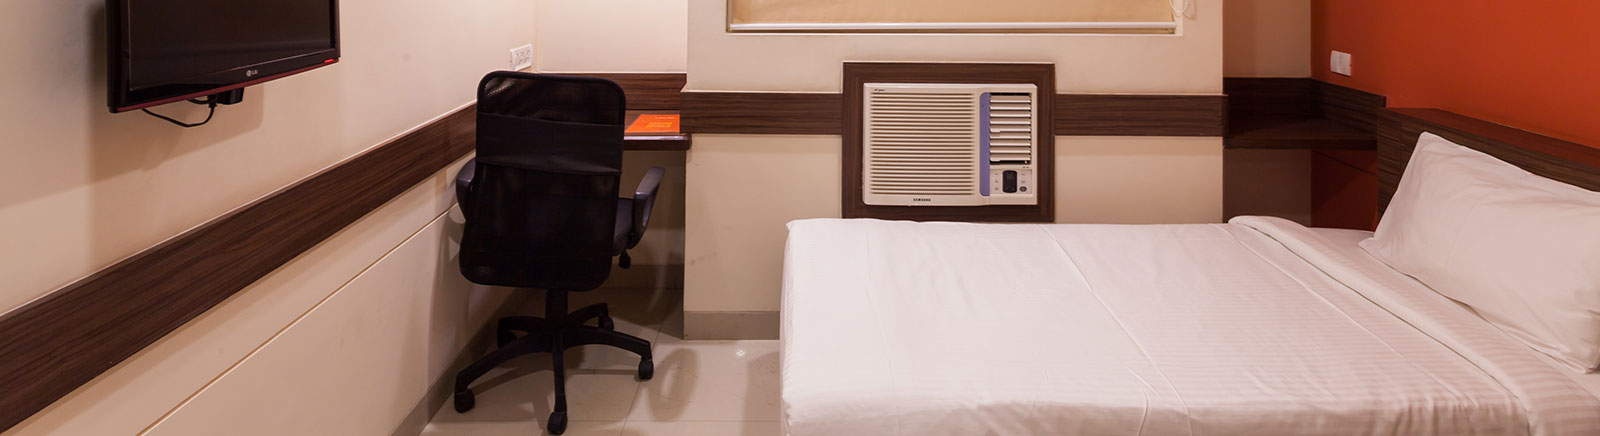 Ginger Indore Hotel Rooms